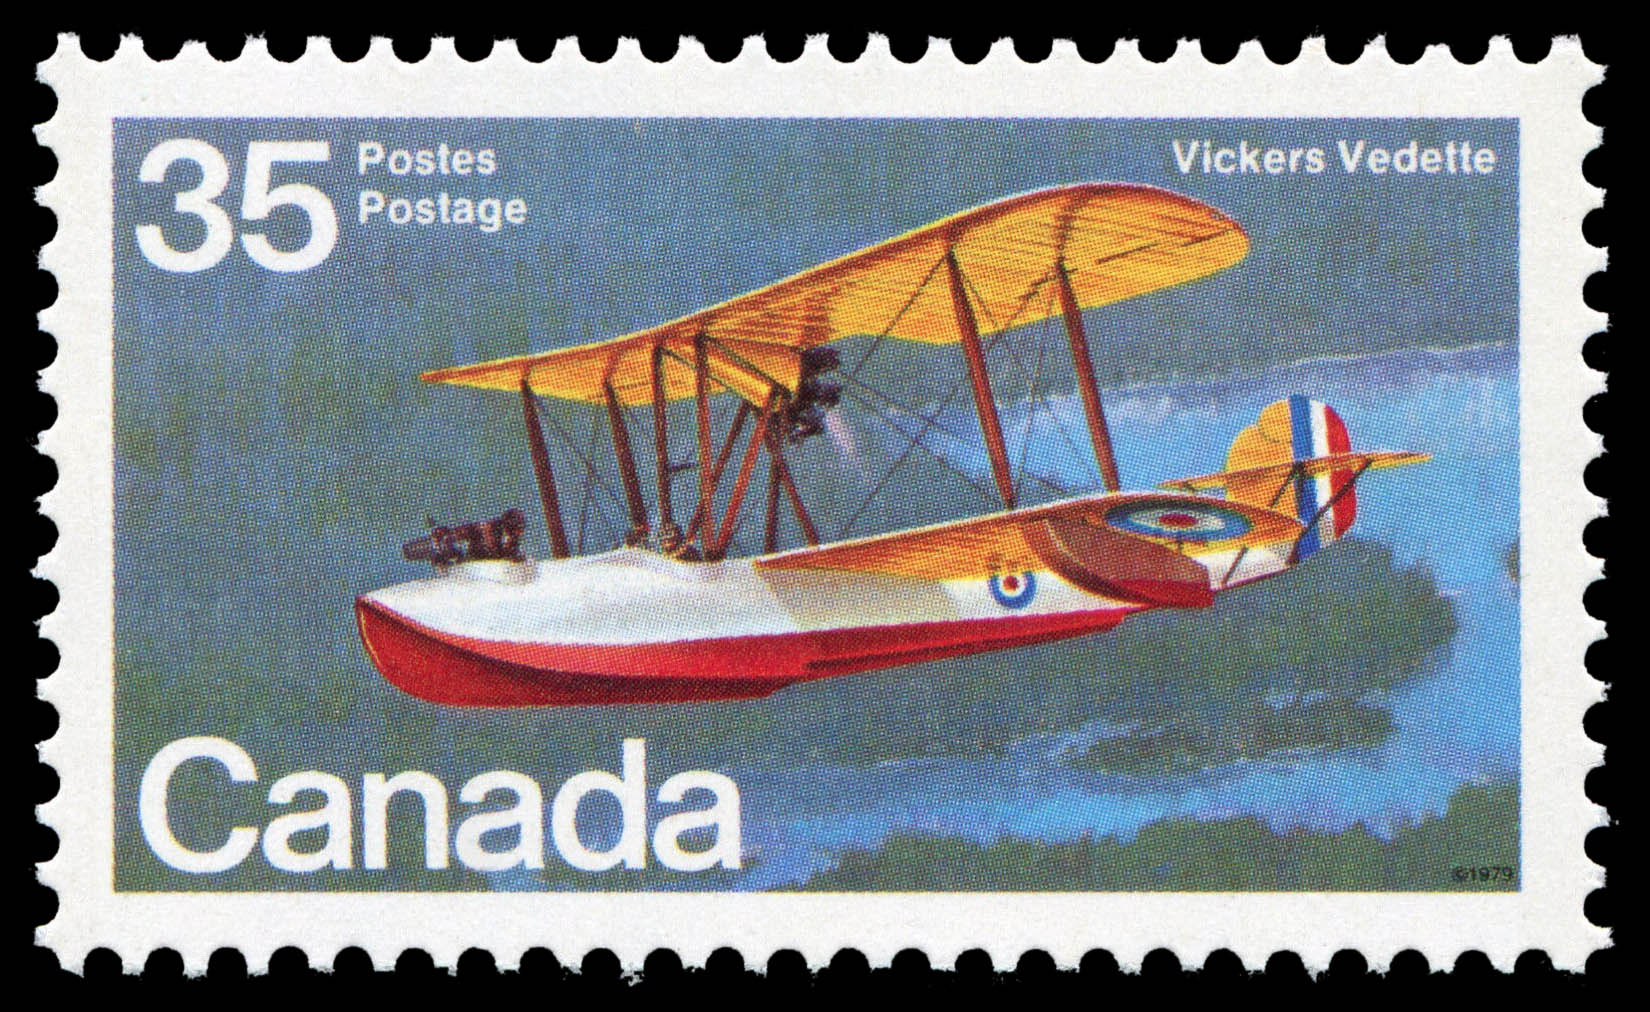 Vickers Vedette Canada Postage Stamp | Canadian Aircraft, Flying Boats